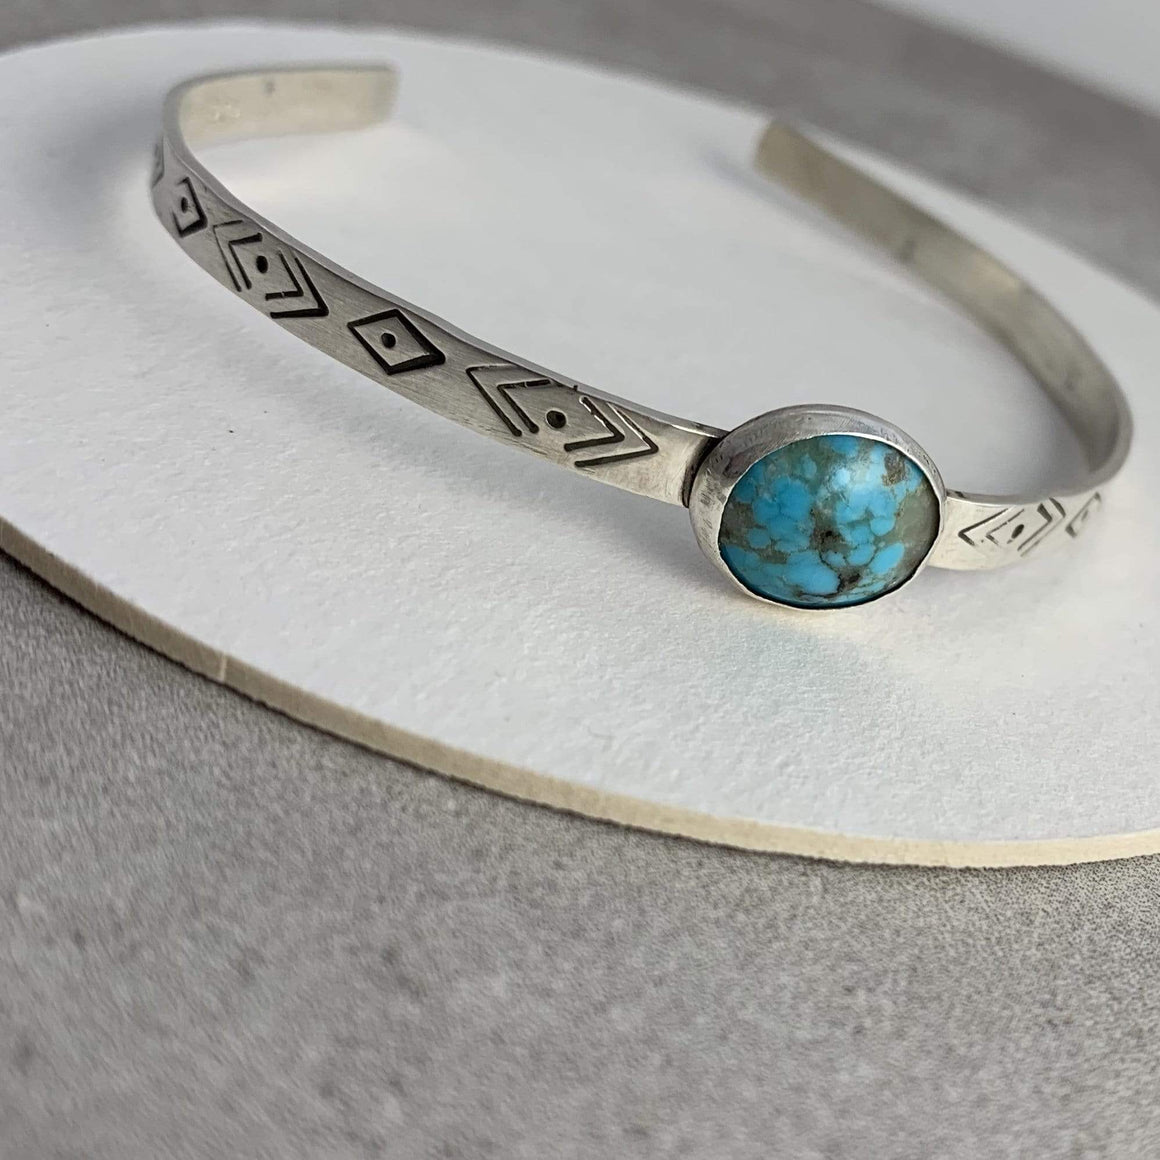 DLK Designs Kingman Turquoise Evil Eye Cuff